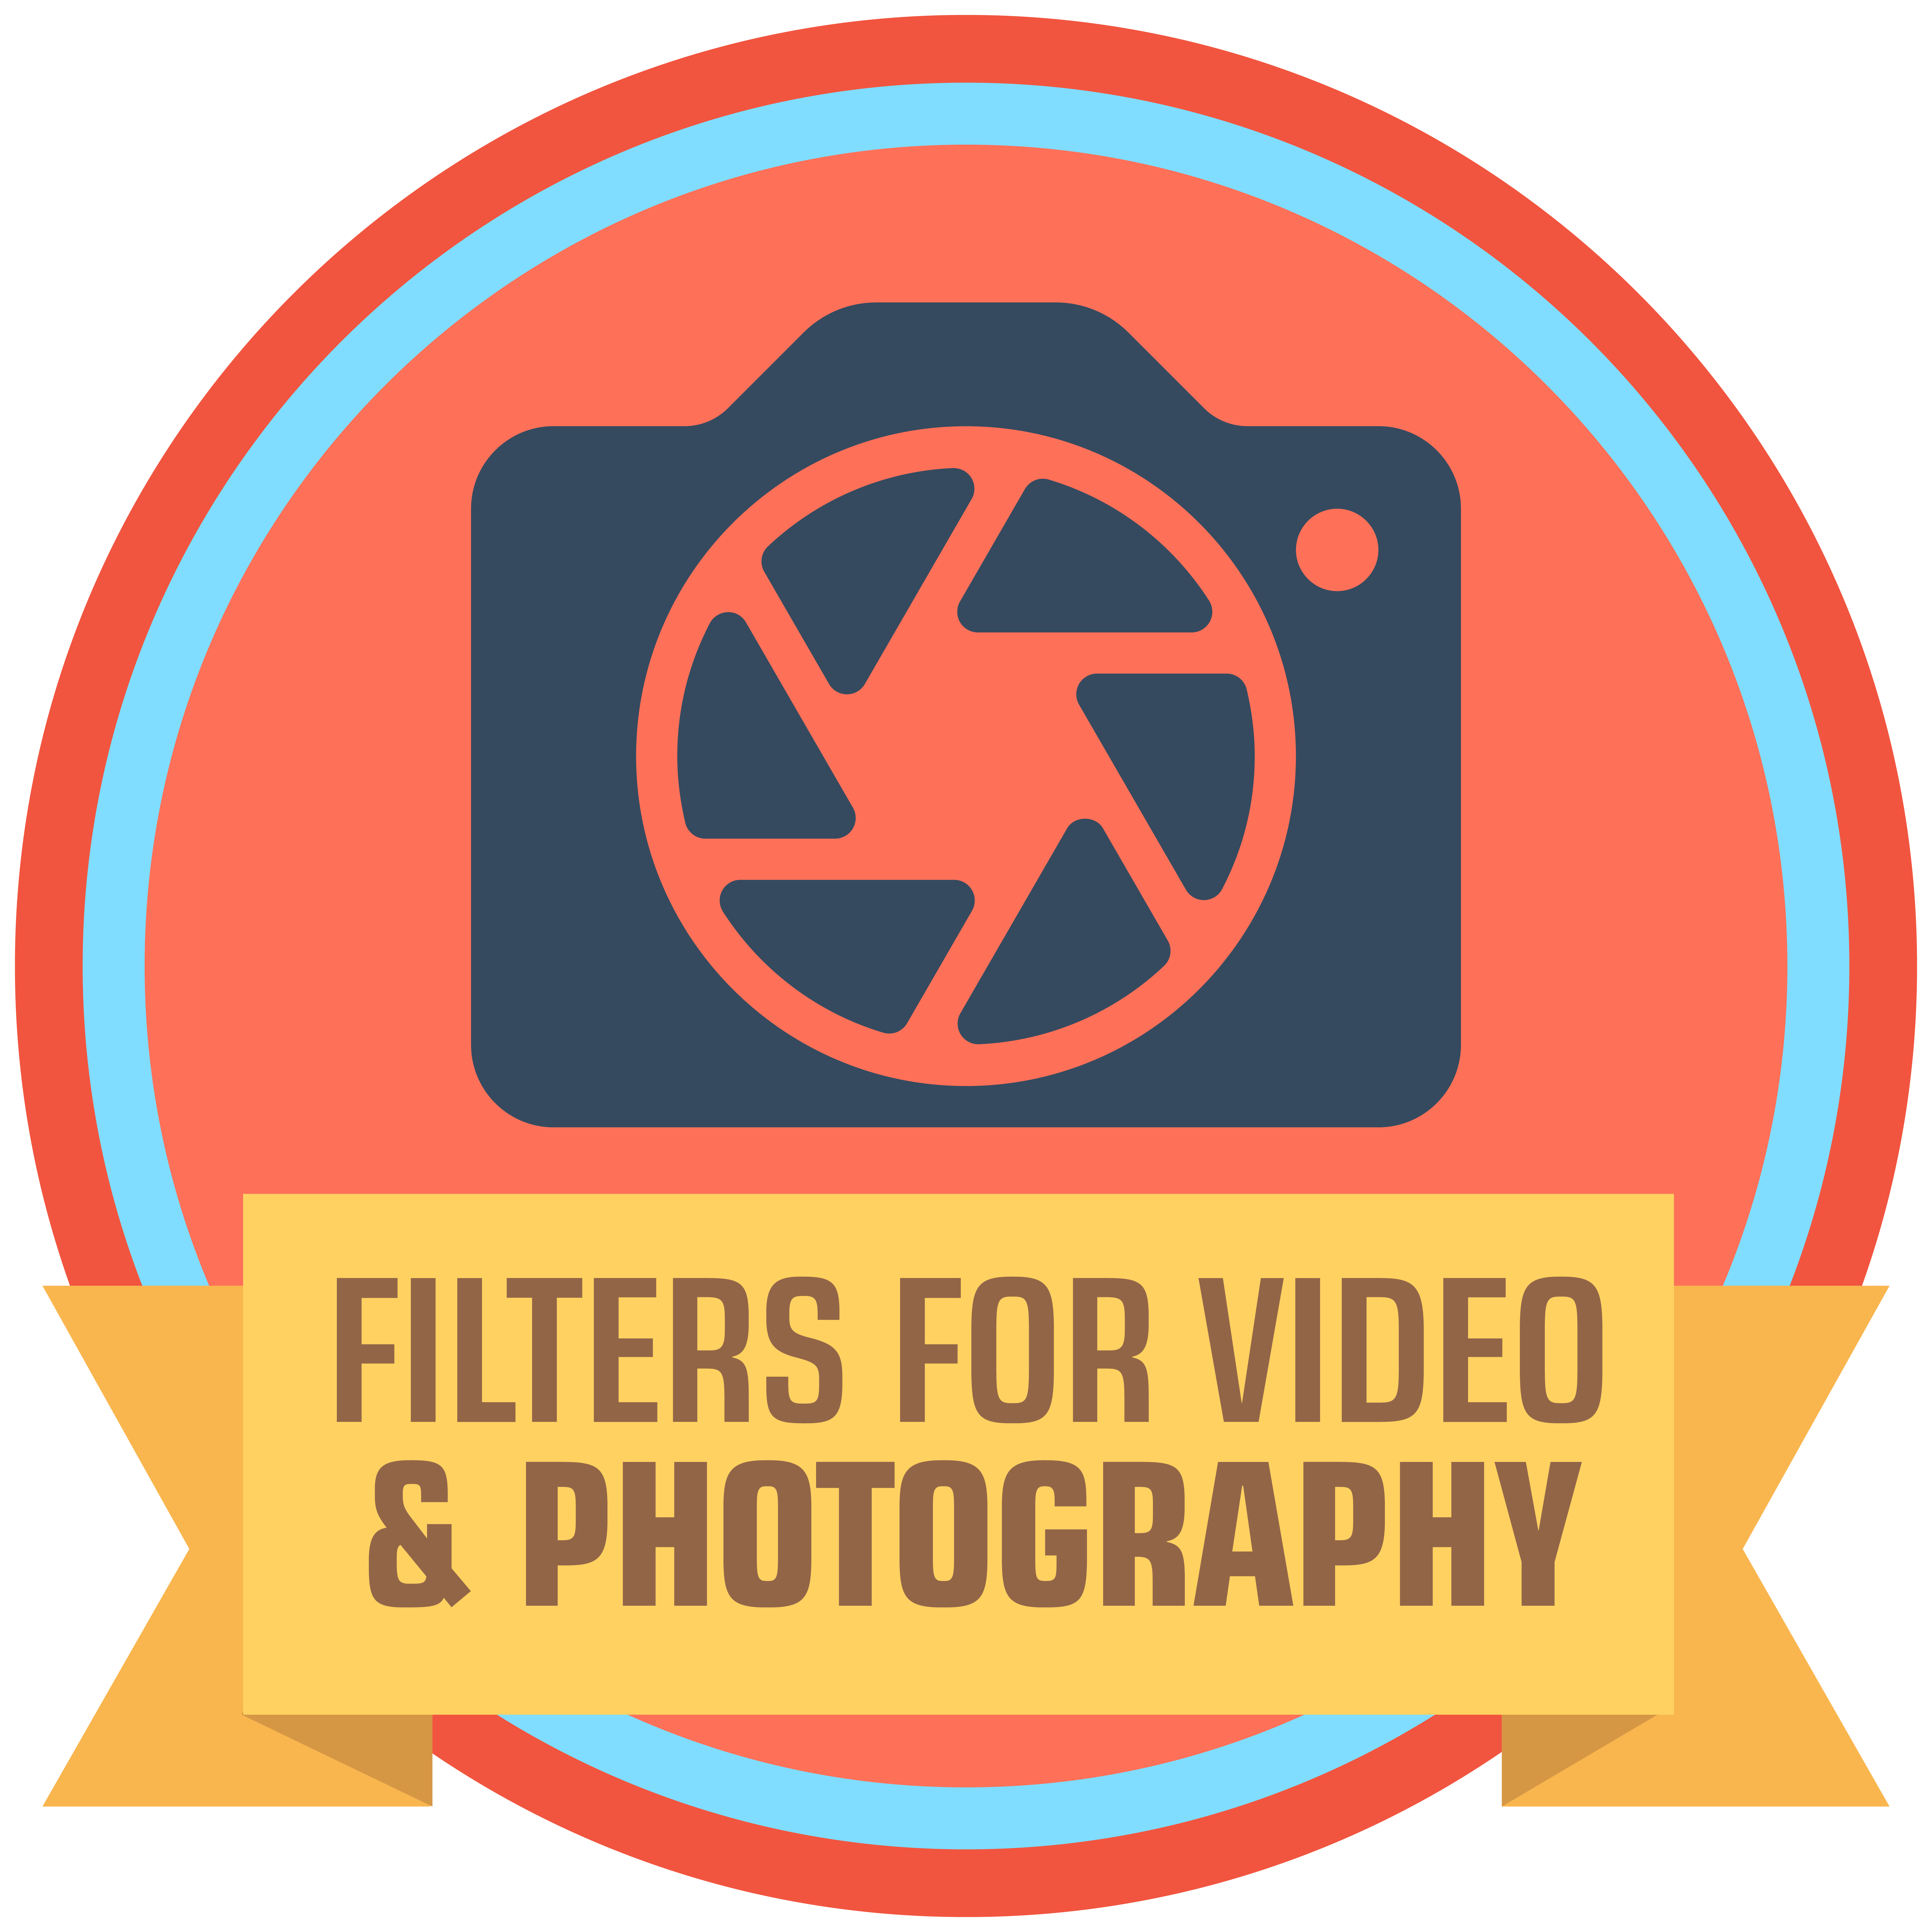 ND filter, UV filter and Polarizing filter for drone photography and videography